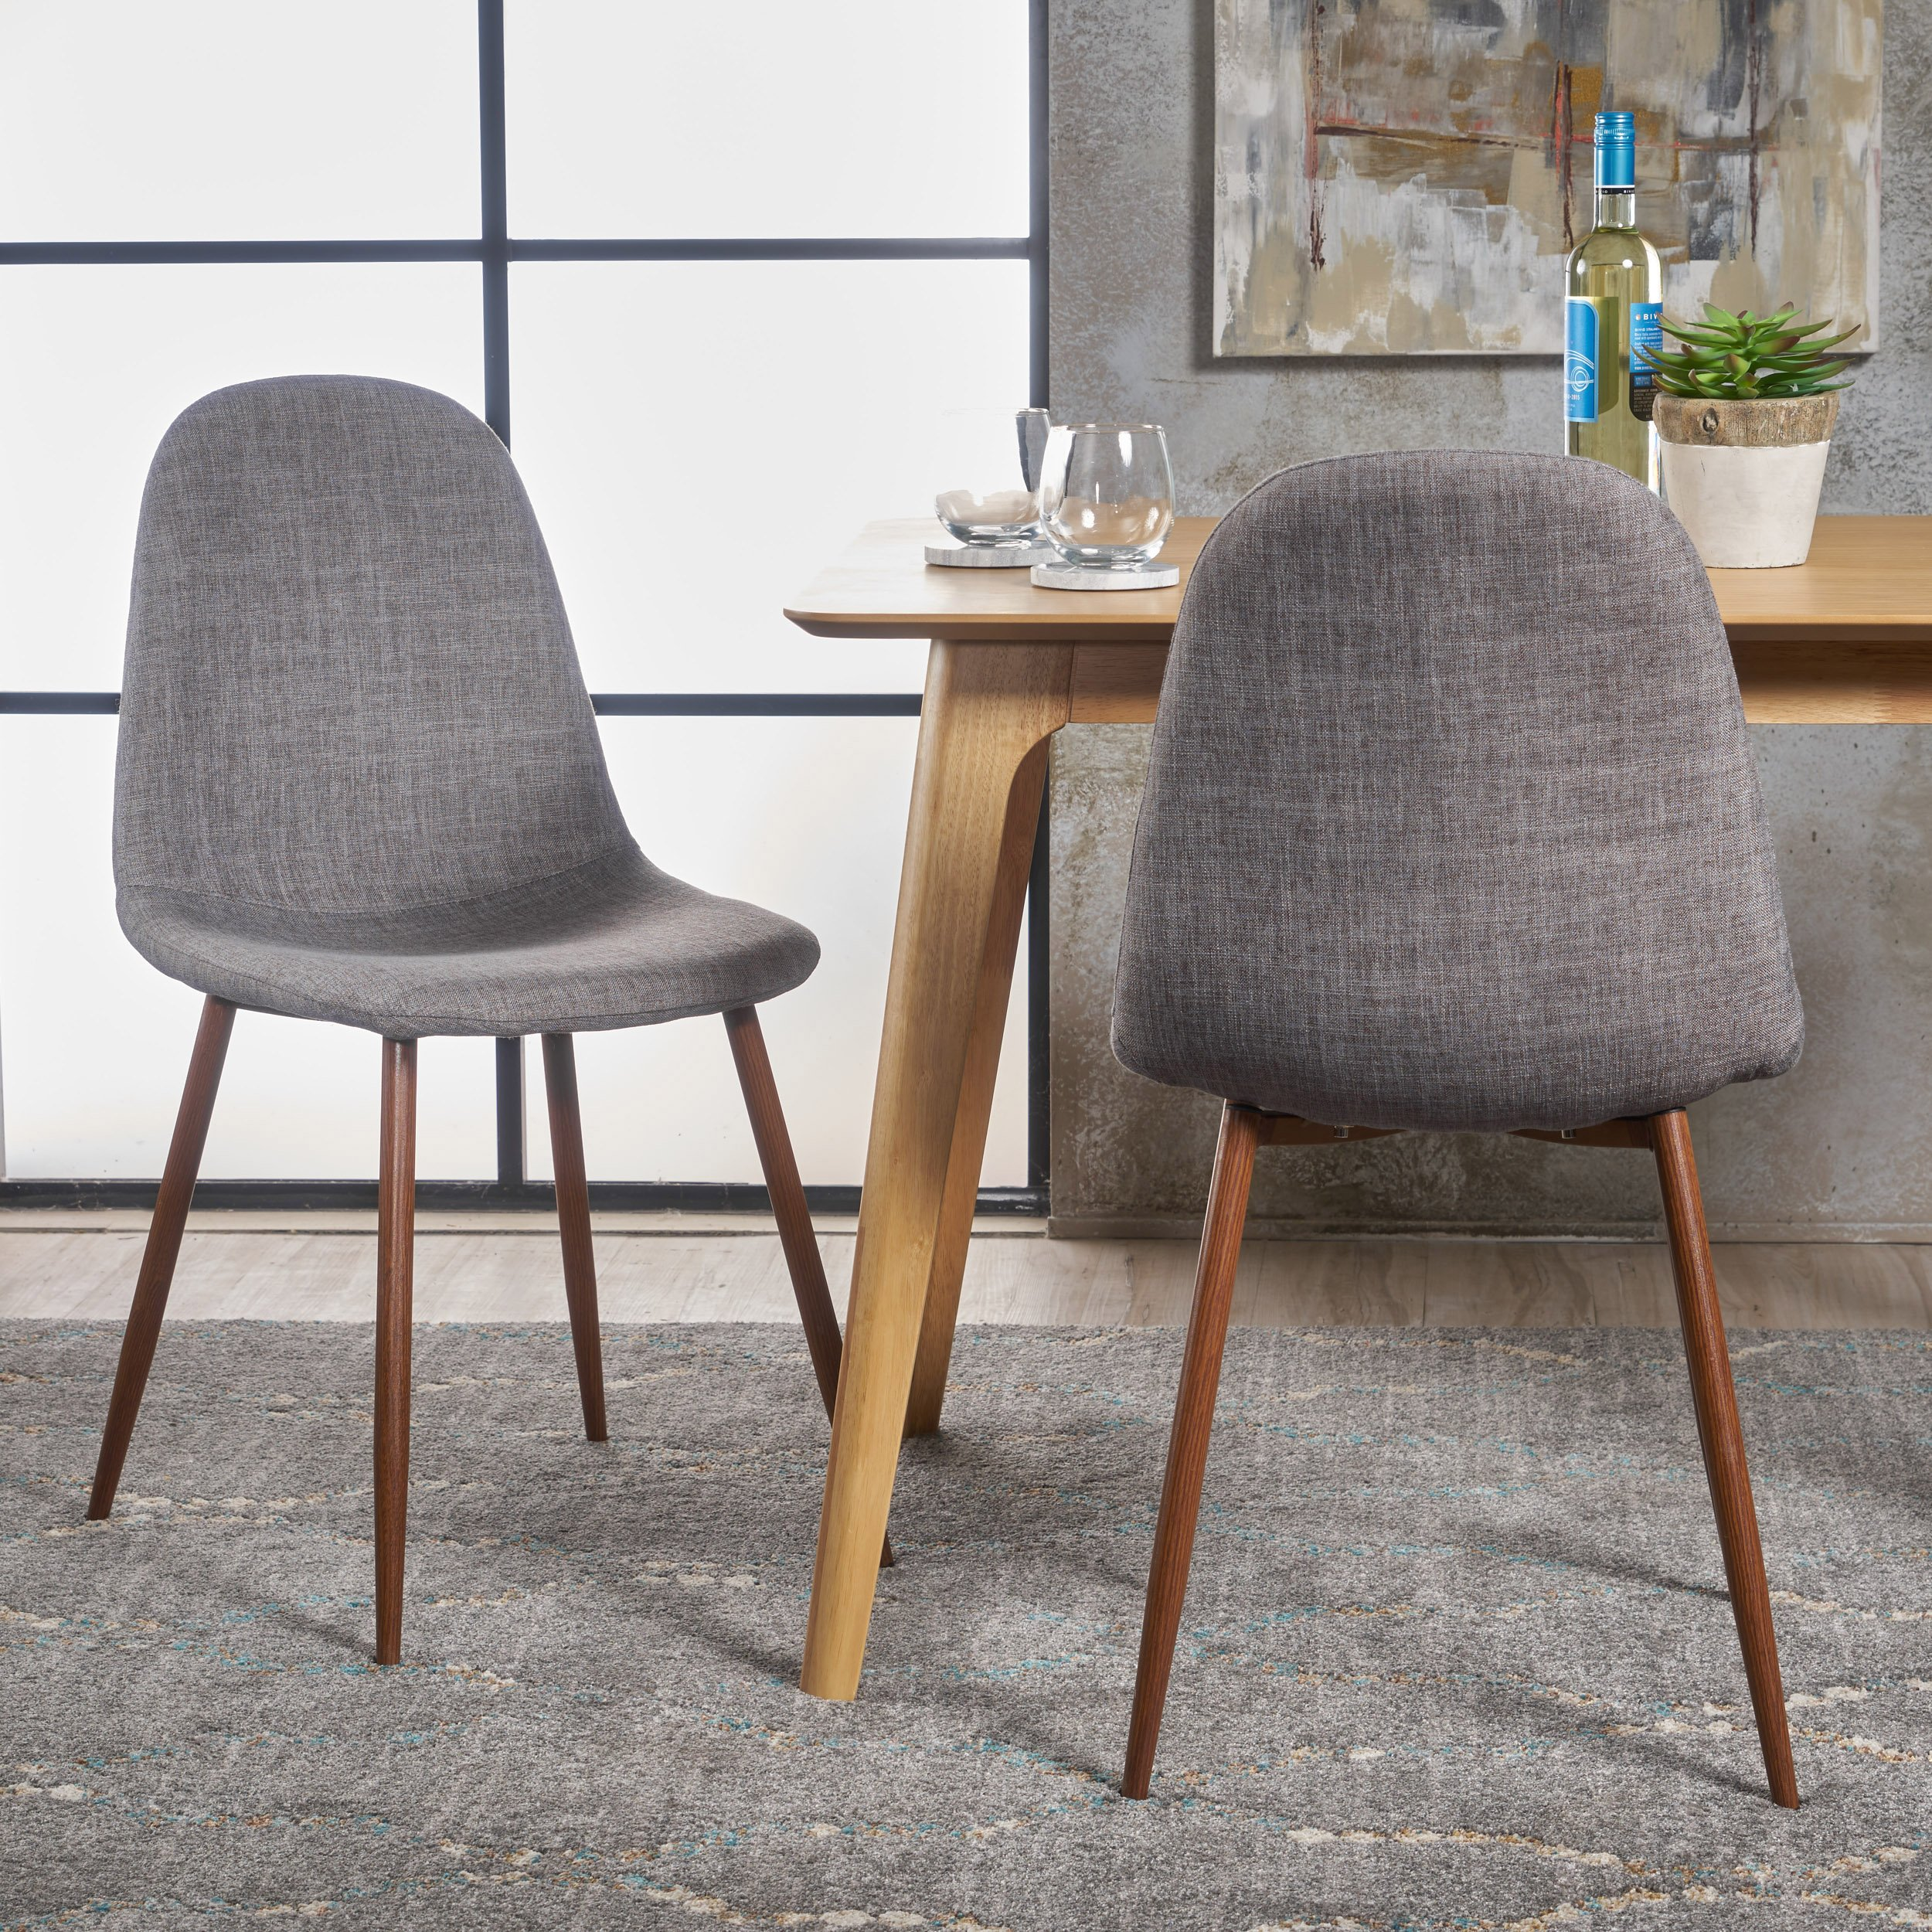 Christopher Knight Home 301730 Raina Dining Chairs, Light Grey + Dark Brown by Christopher Knight Home